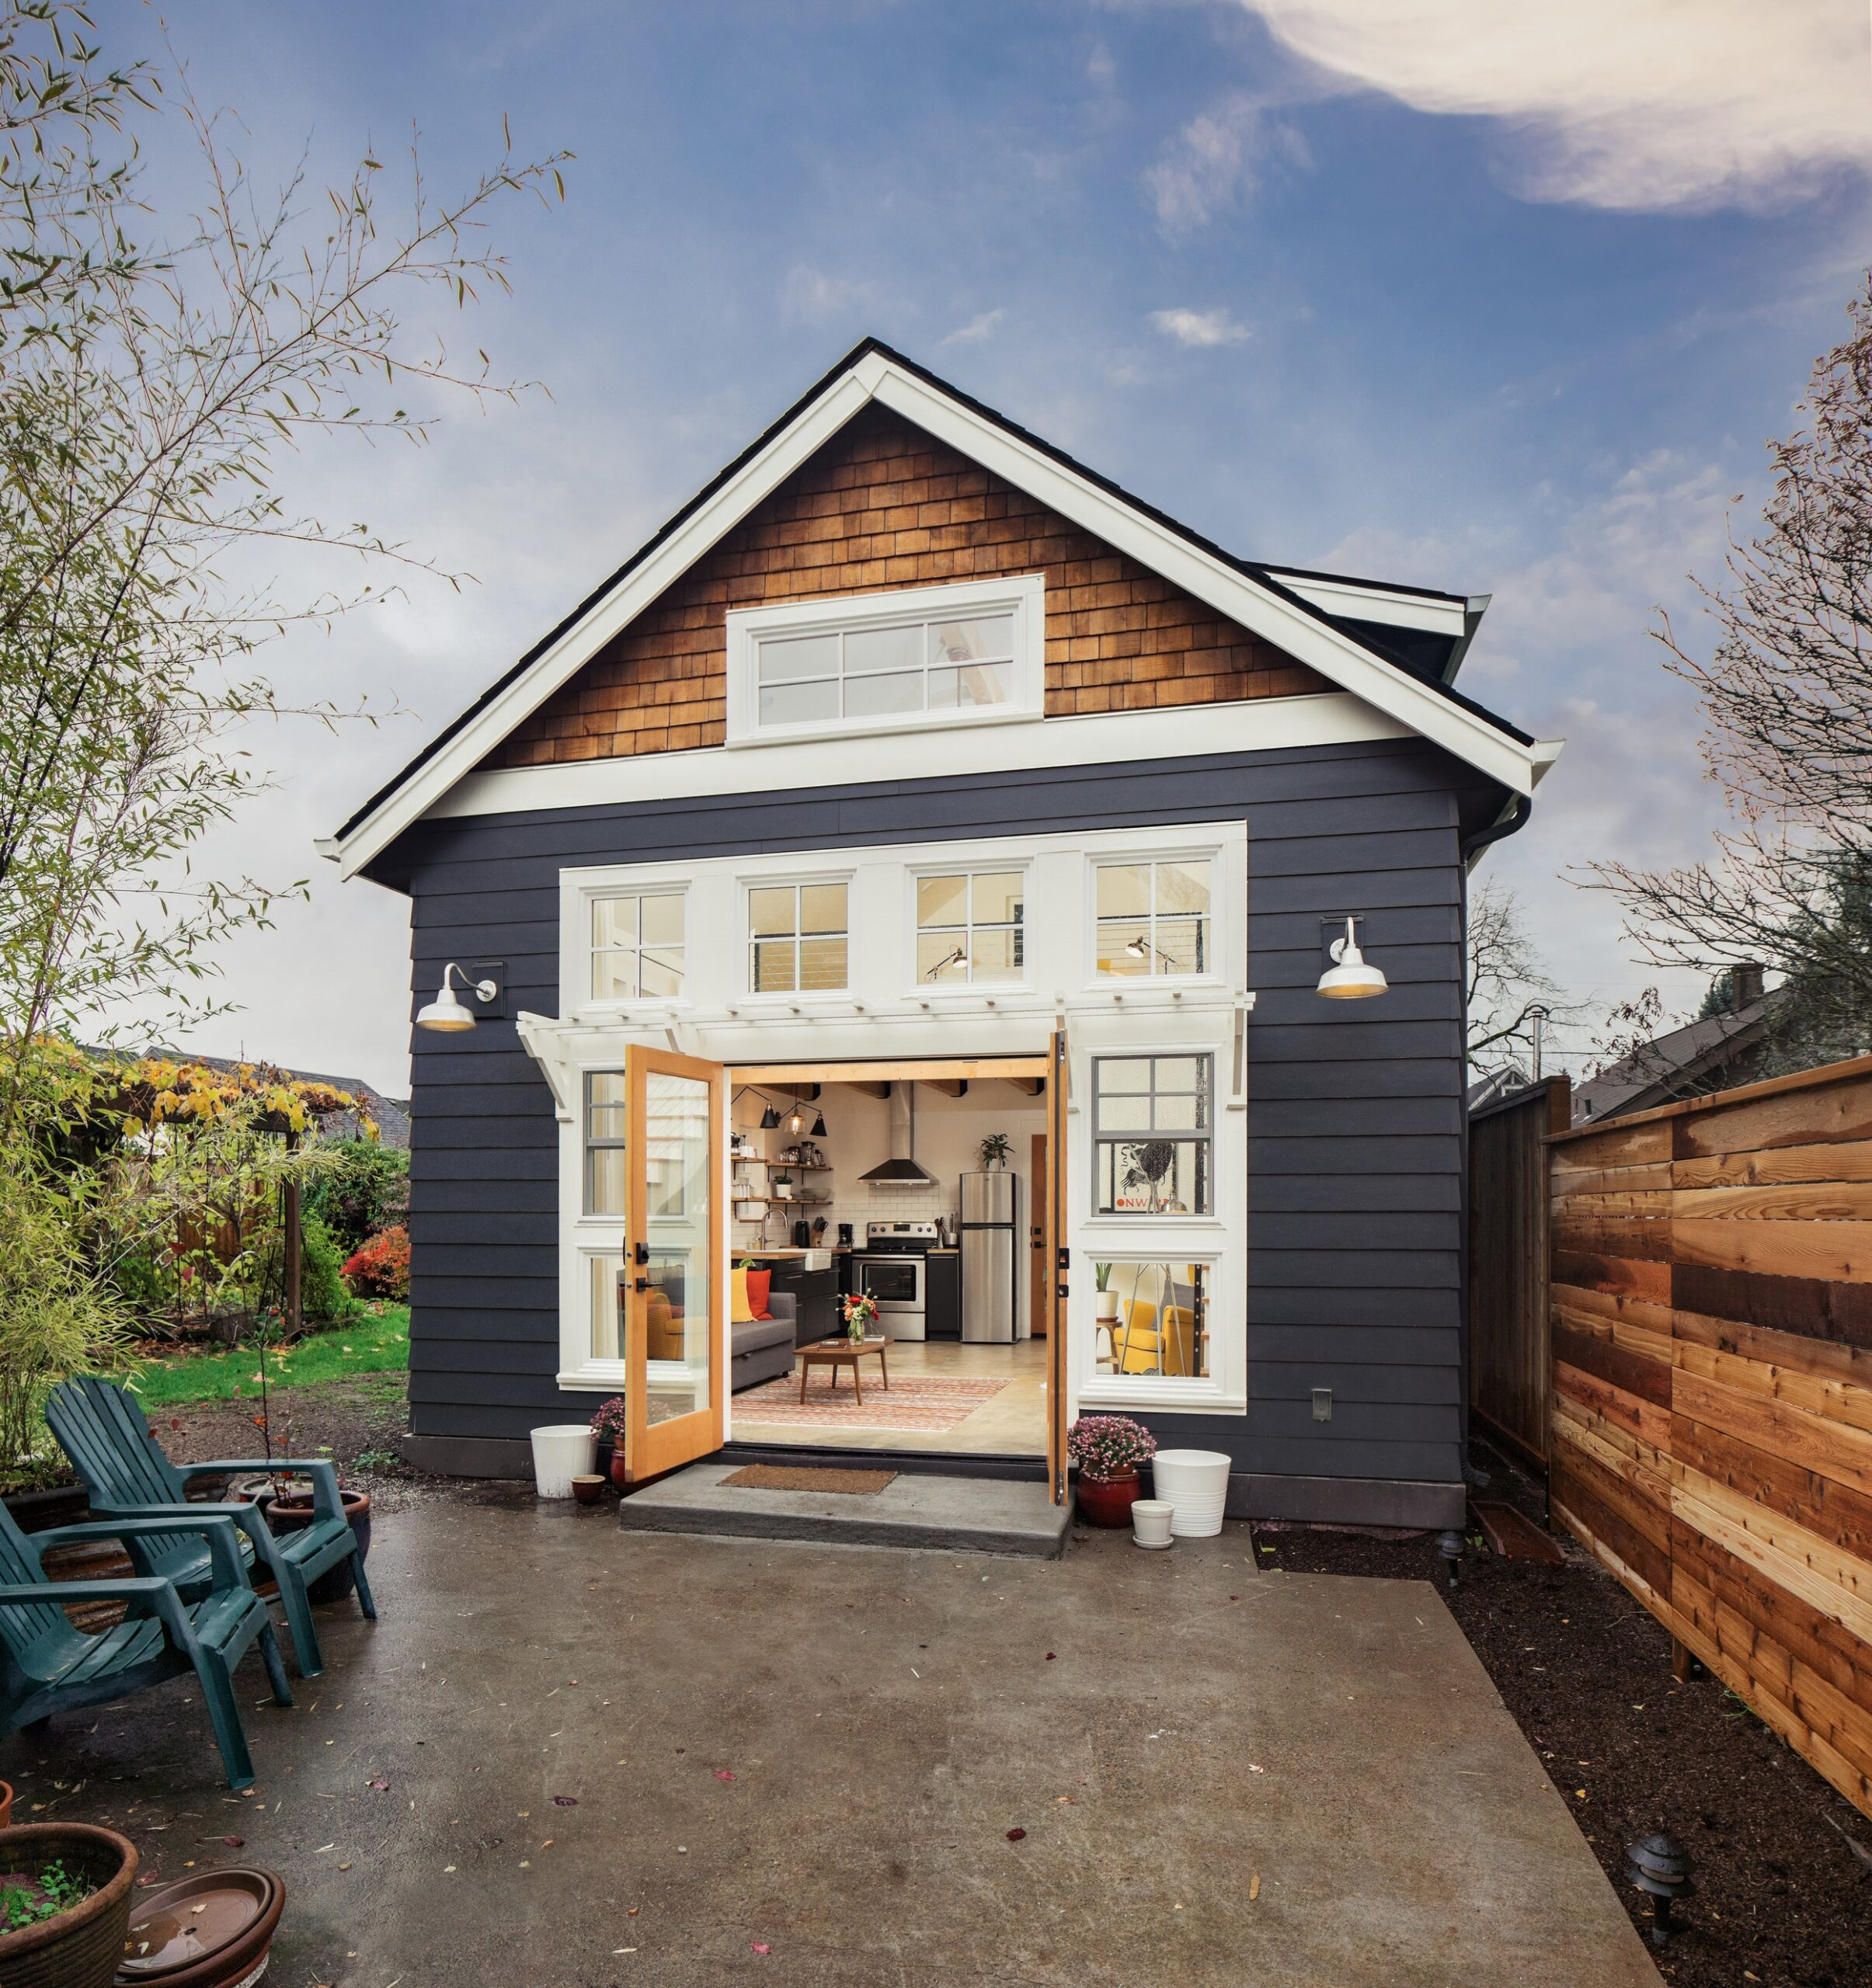 example of tiny home or adu built in portland oregon